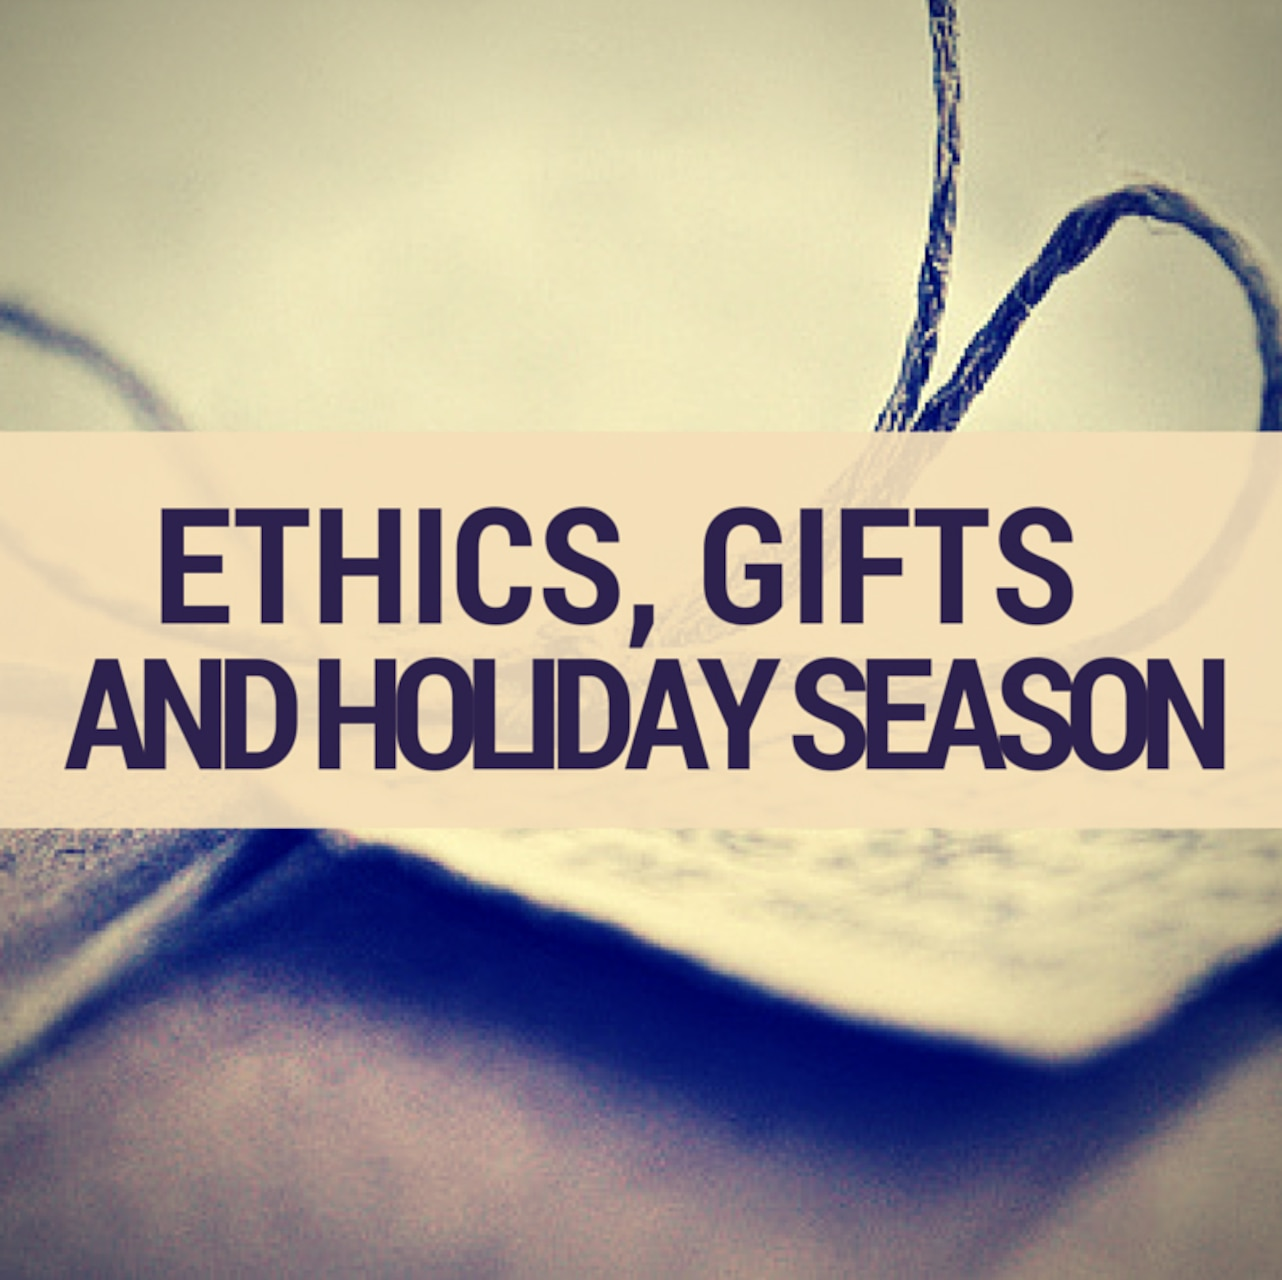 Legal Website - Ethics, Gifts and Holiday Season